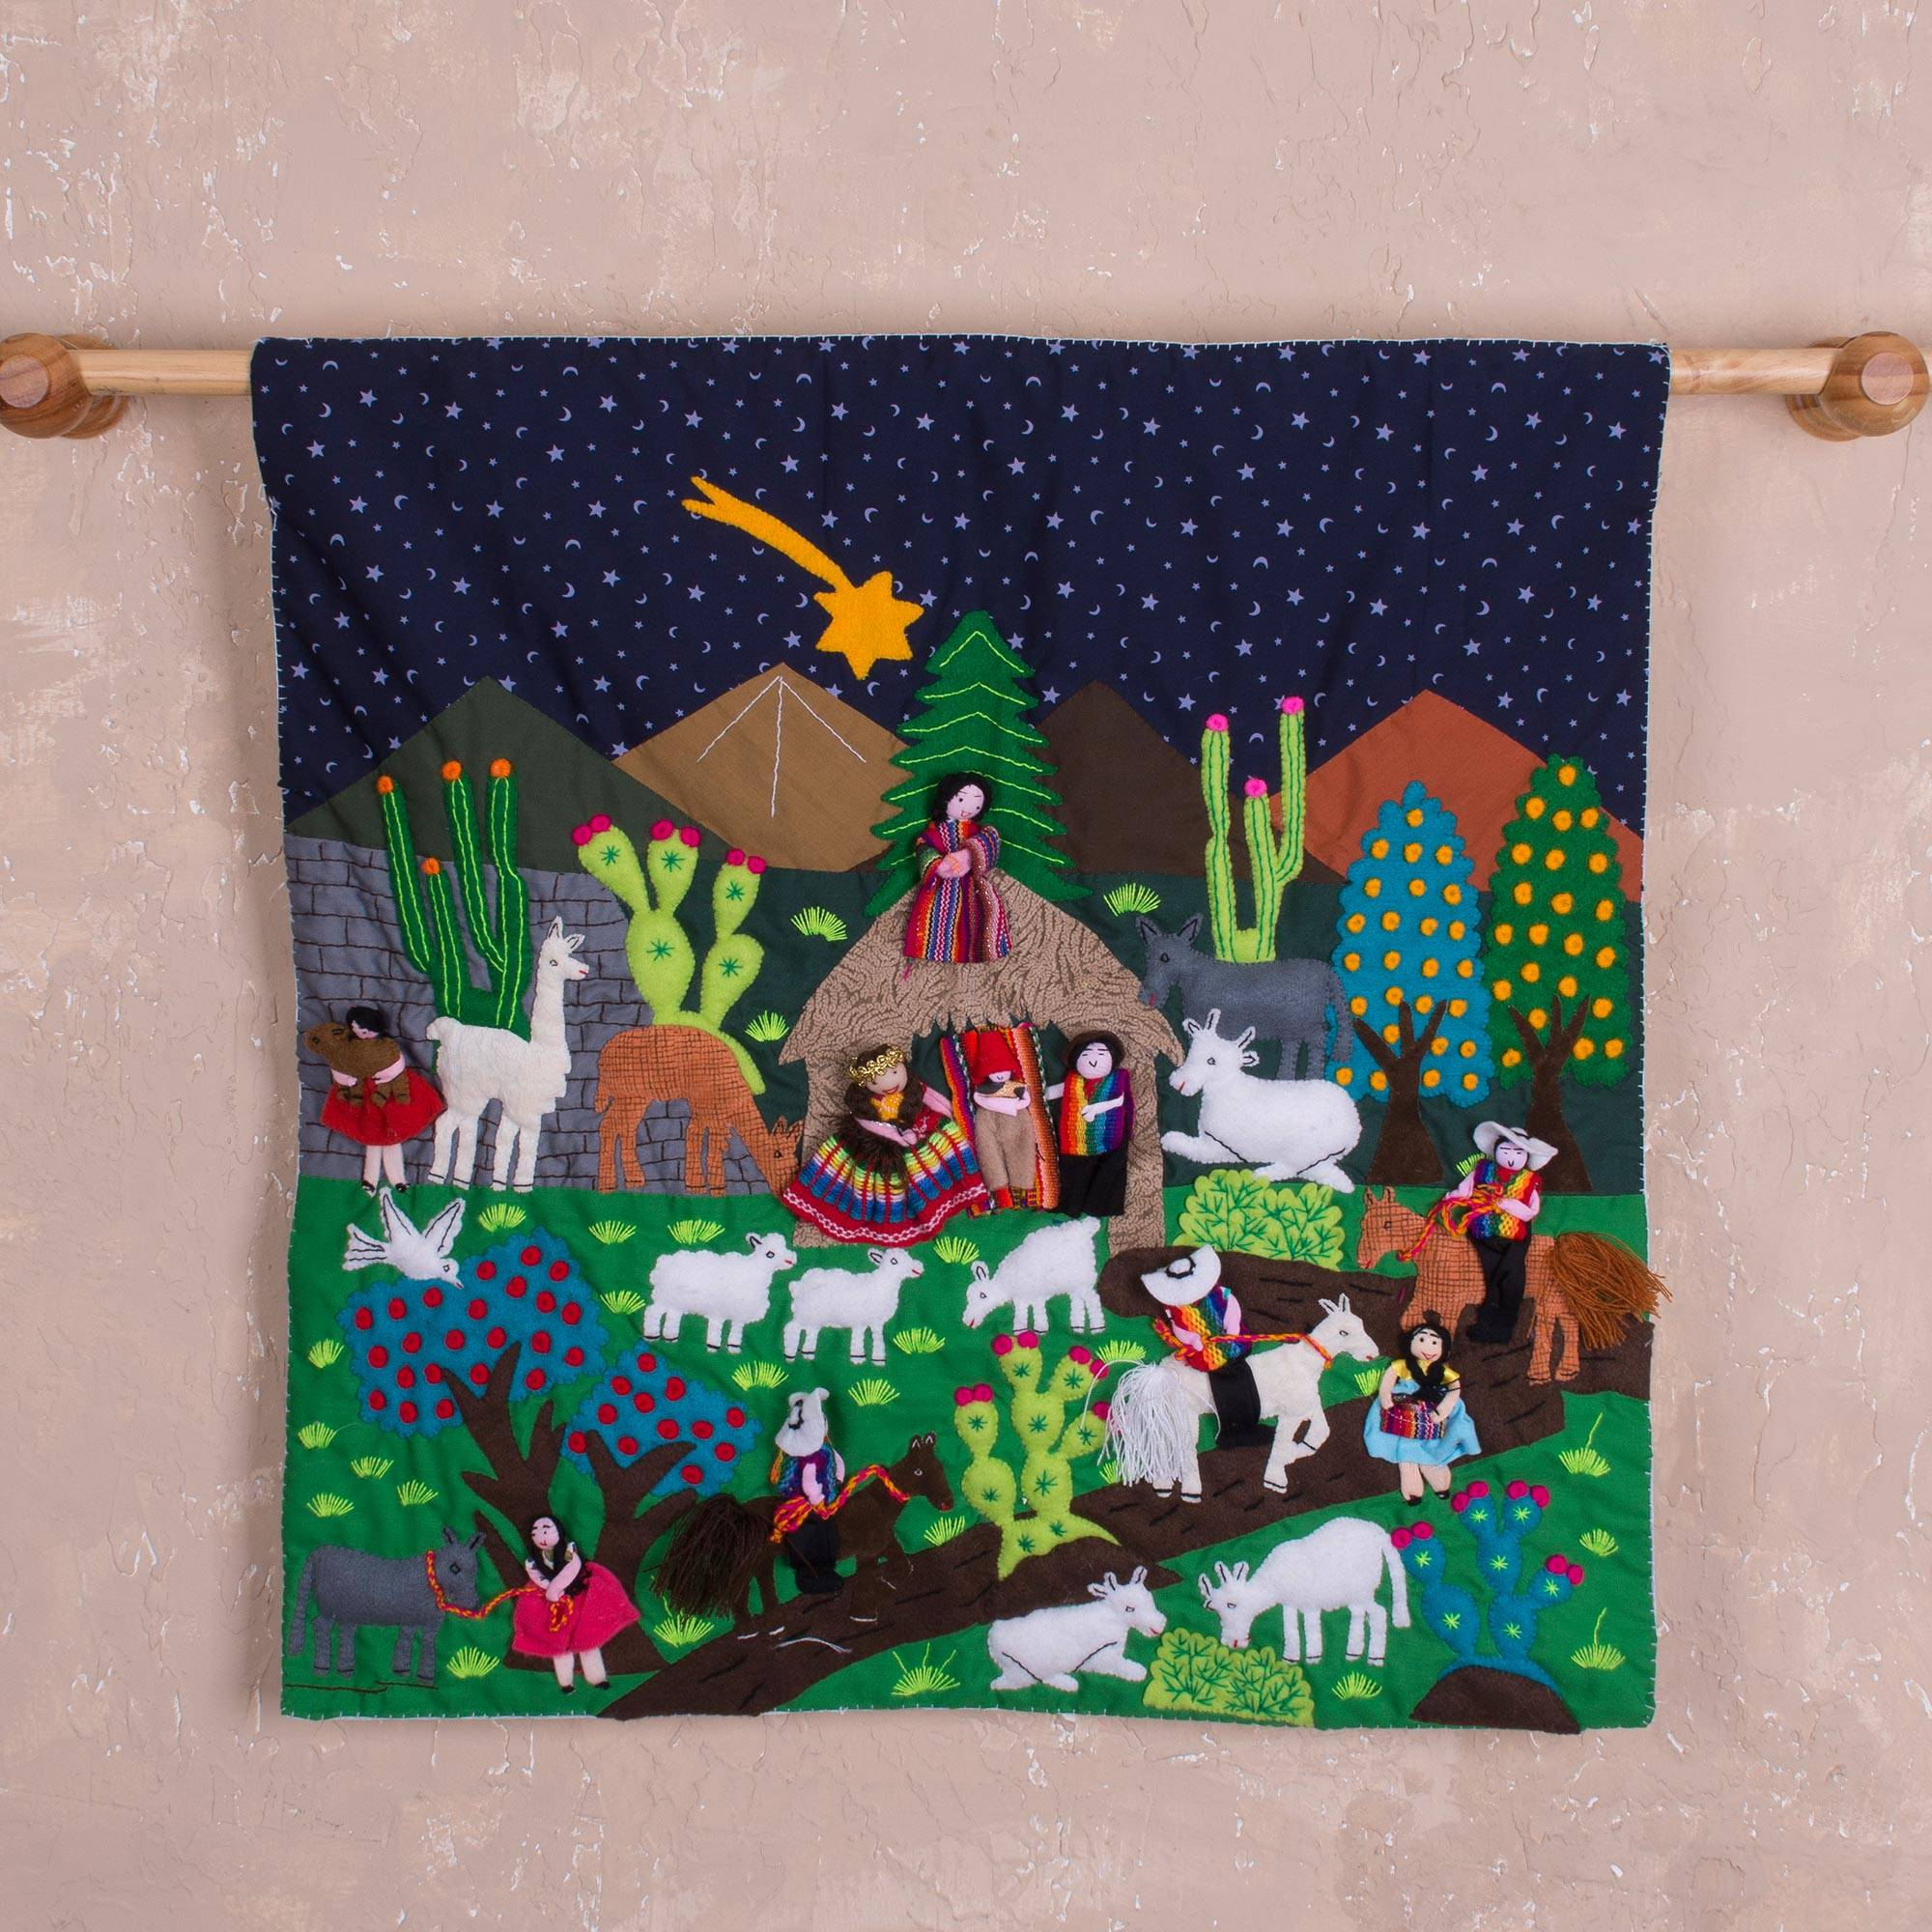 Hand Made Cotton Arpillera Wall Hanging Of Andean Nativity Andean Nativity Novica